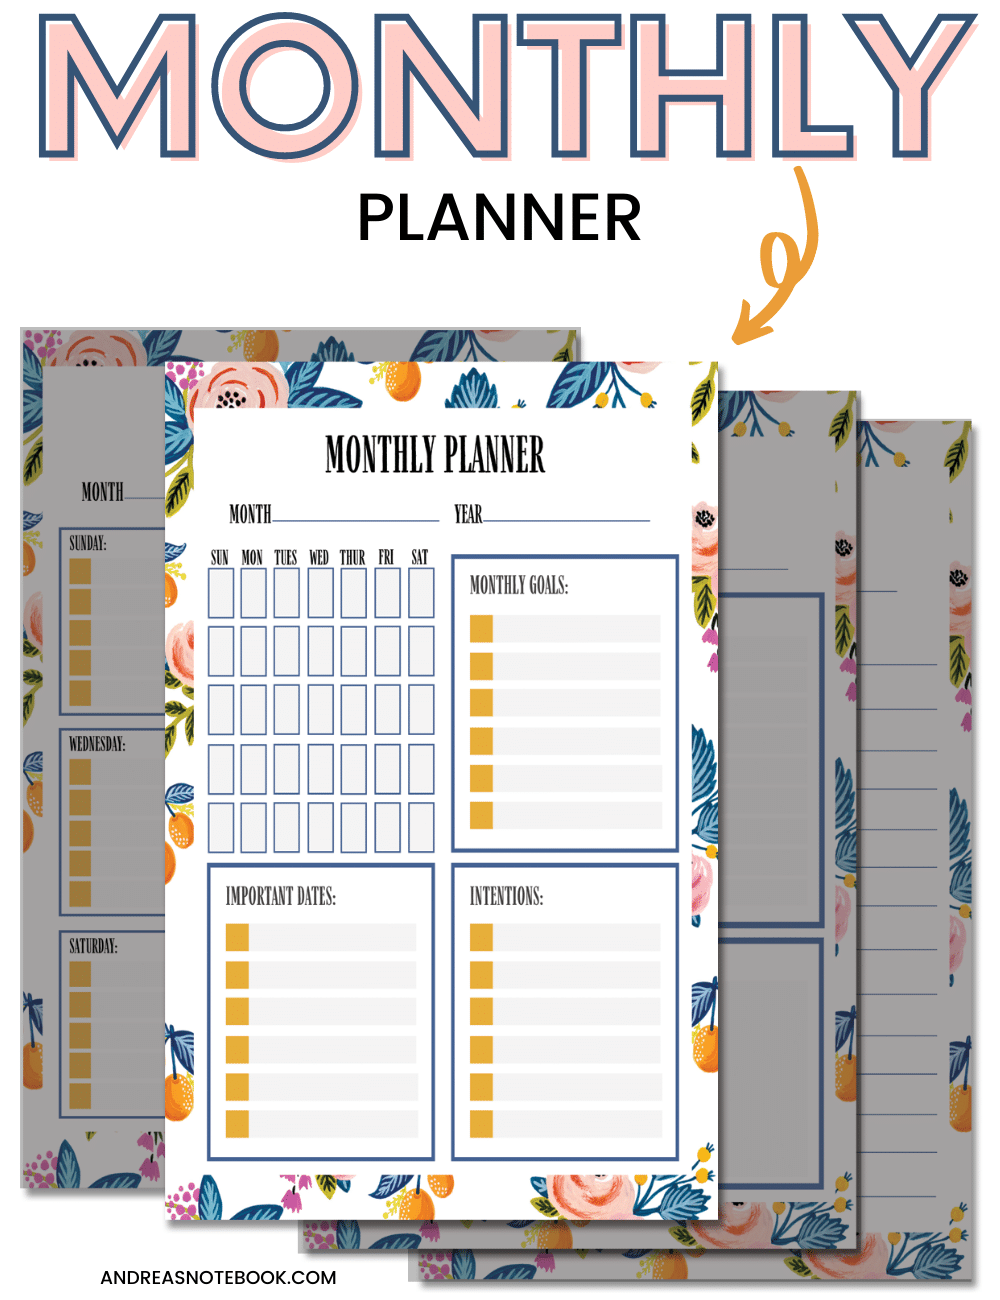 free planner - image of 4 free planner sheets on top of one another - highlighting monthly planner sheet